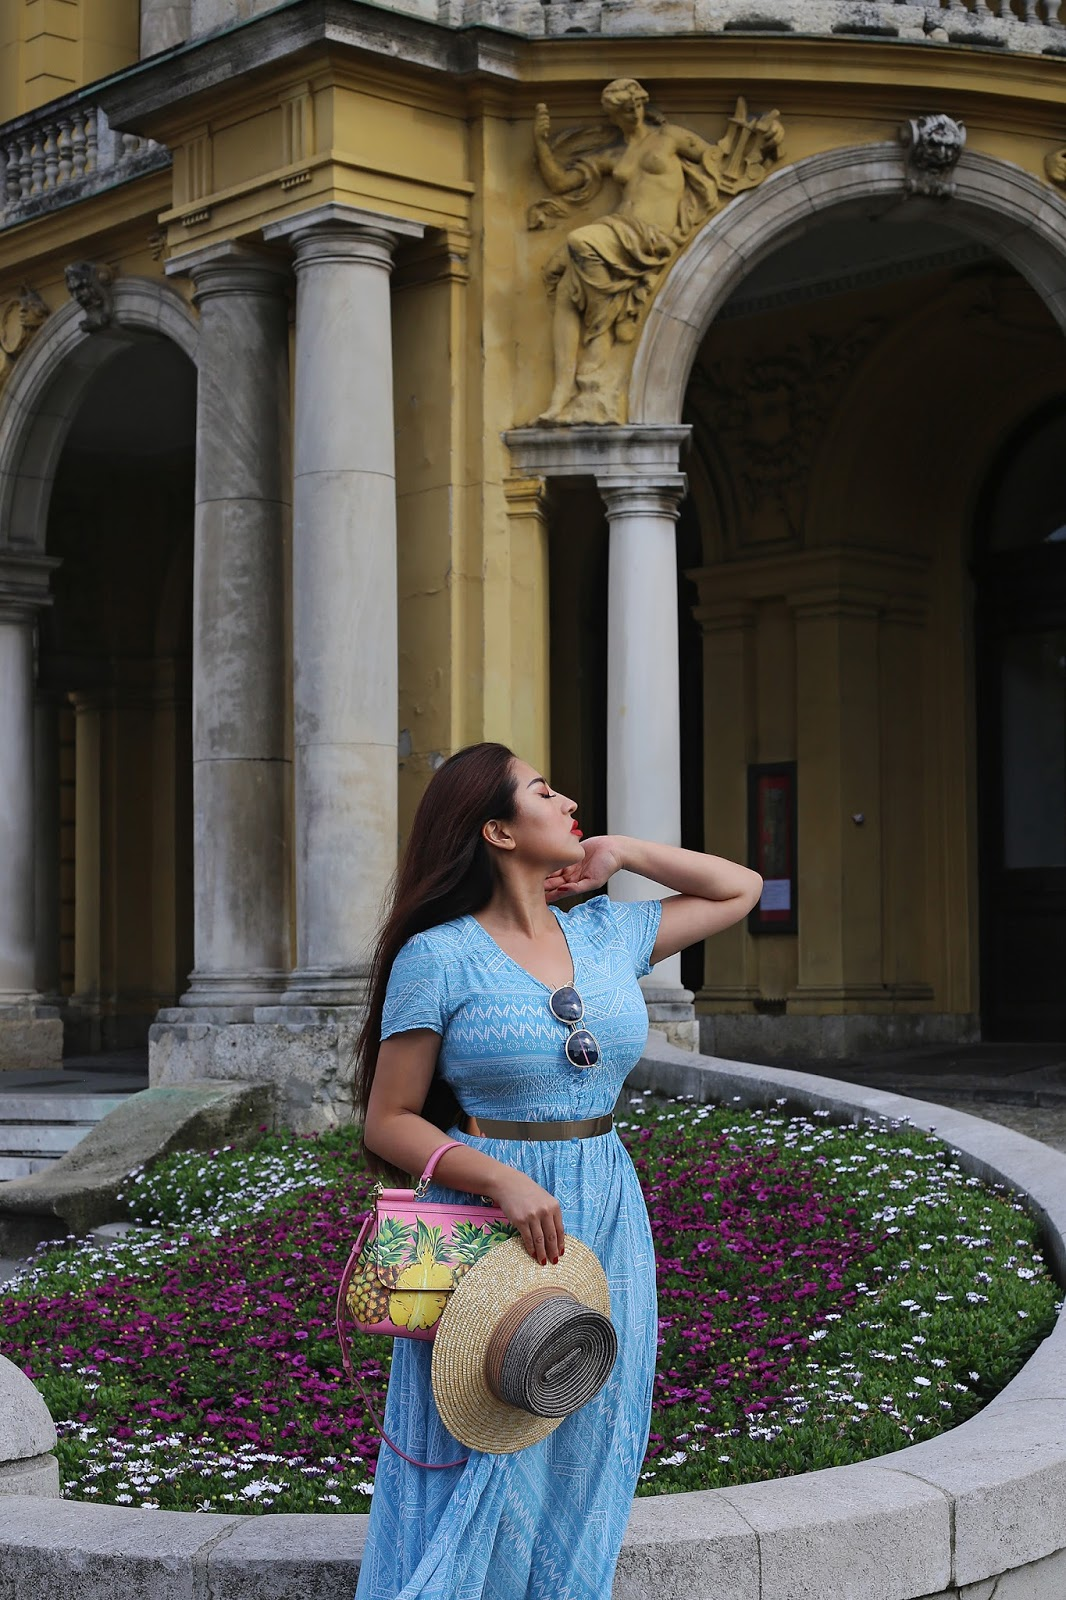 20 Days, 20 Cities, 6 Countries - Part 4: Zagreb, Croatia